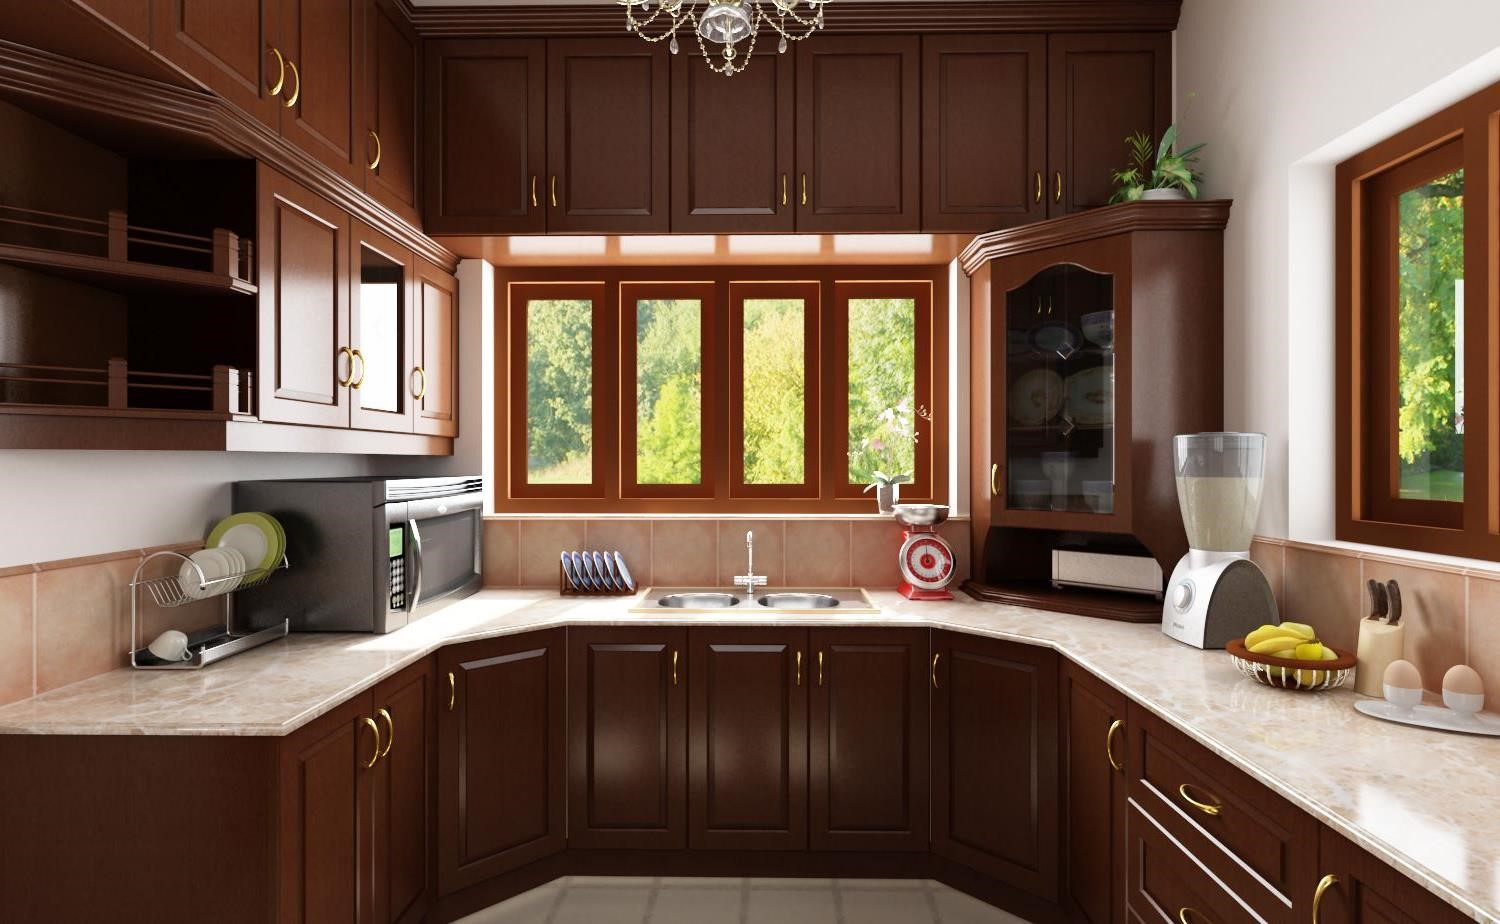 Traditional Indian Kitchen Designs Fascinating Traditional Kitchen Design  On Formality And Functionality Design Ideas